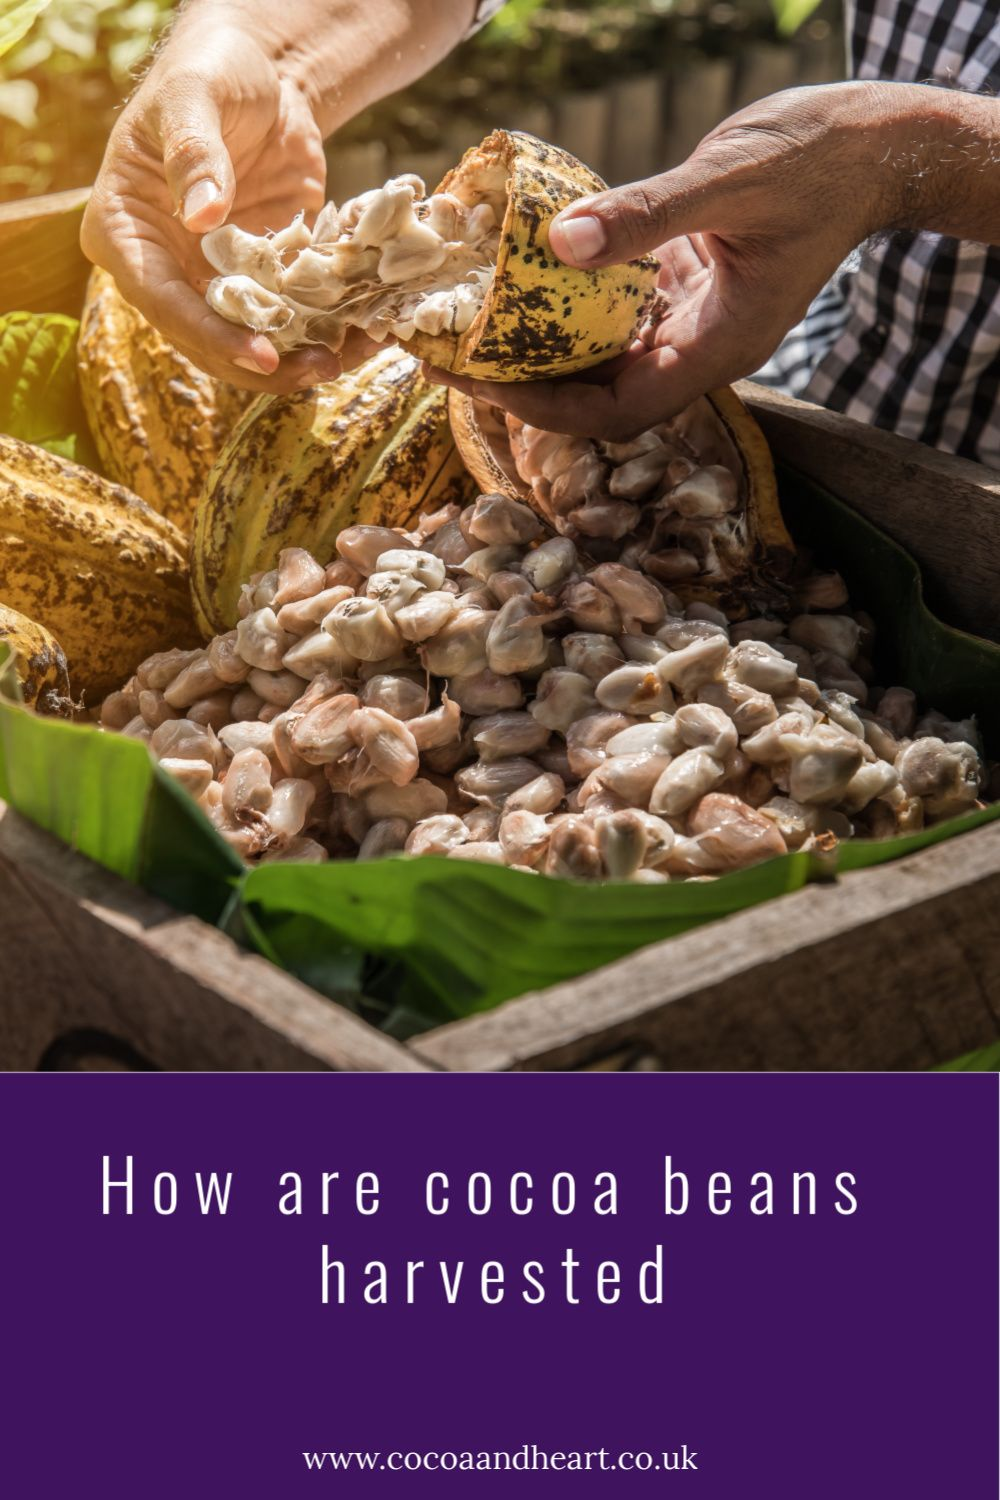 How are cocoa beans harvested